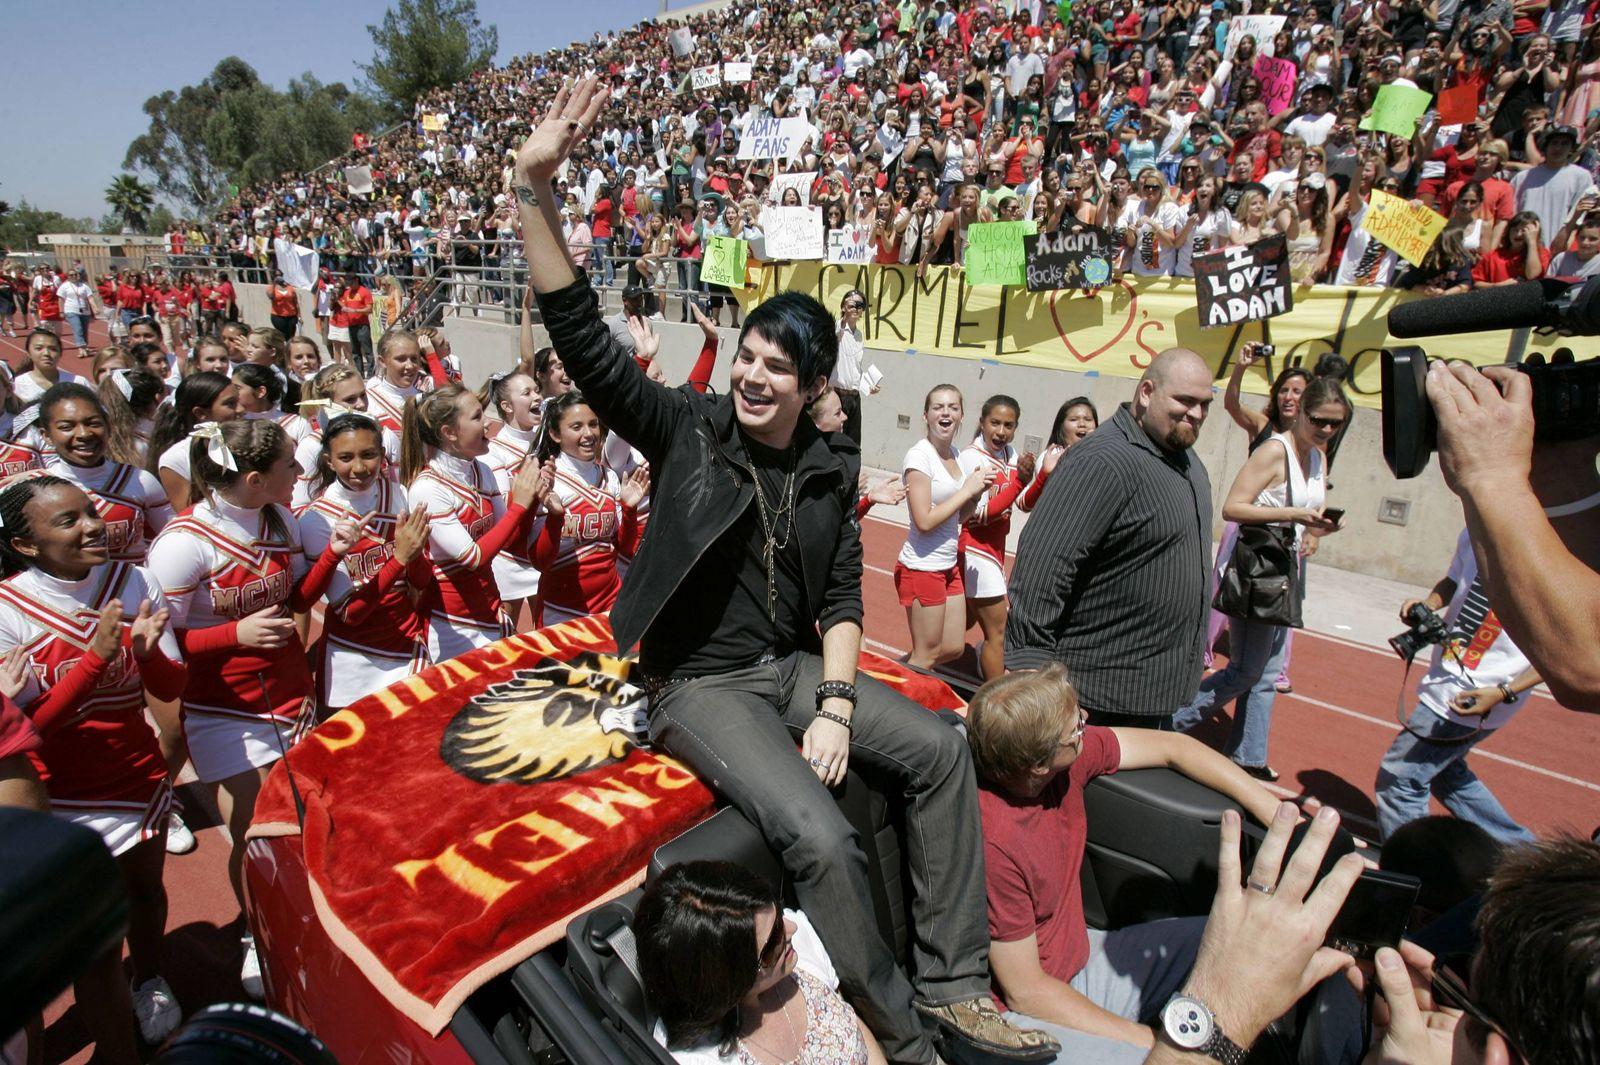 May 08 2009 San Diego California USA American Idol finalist ADAM LAMBERT waves as he begins a